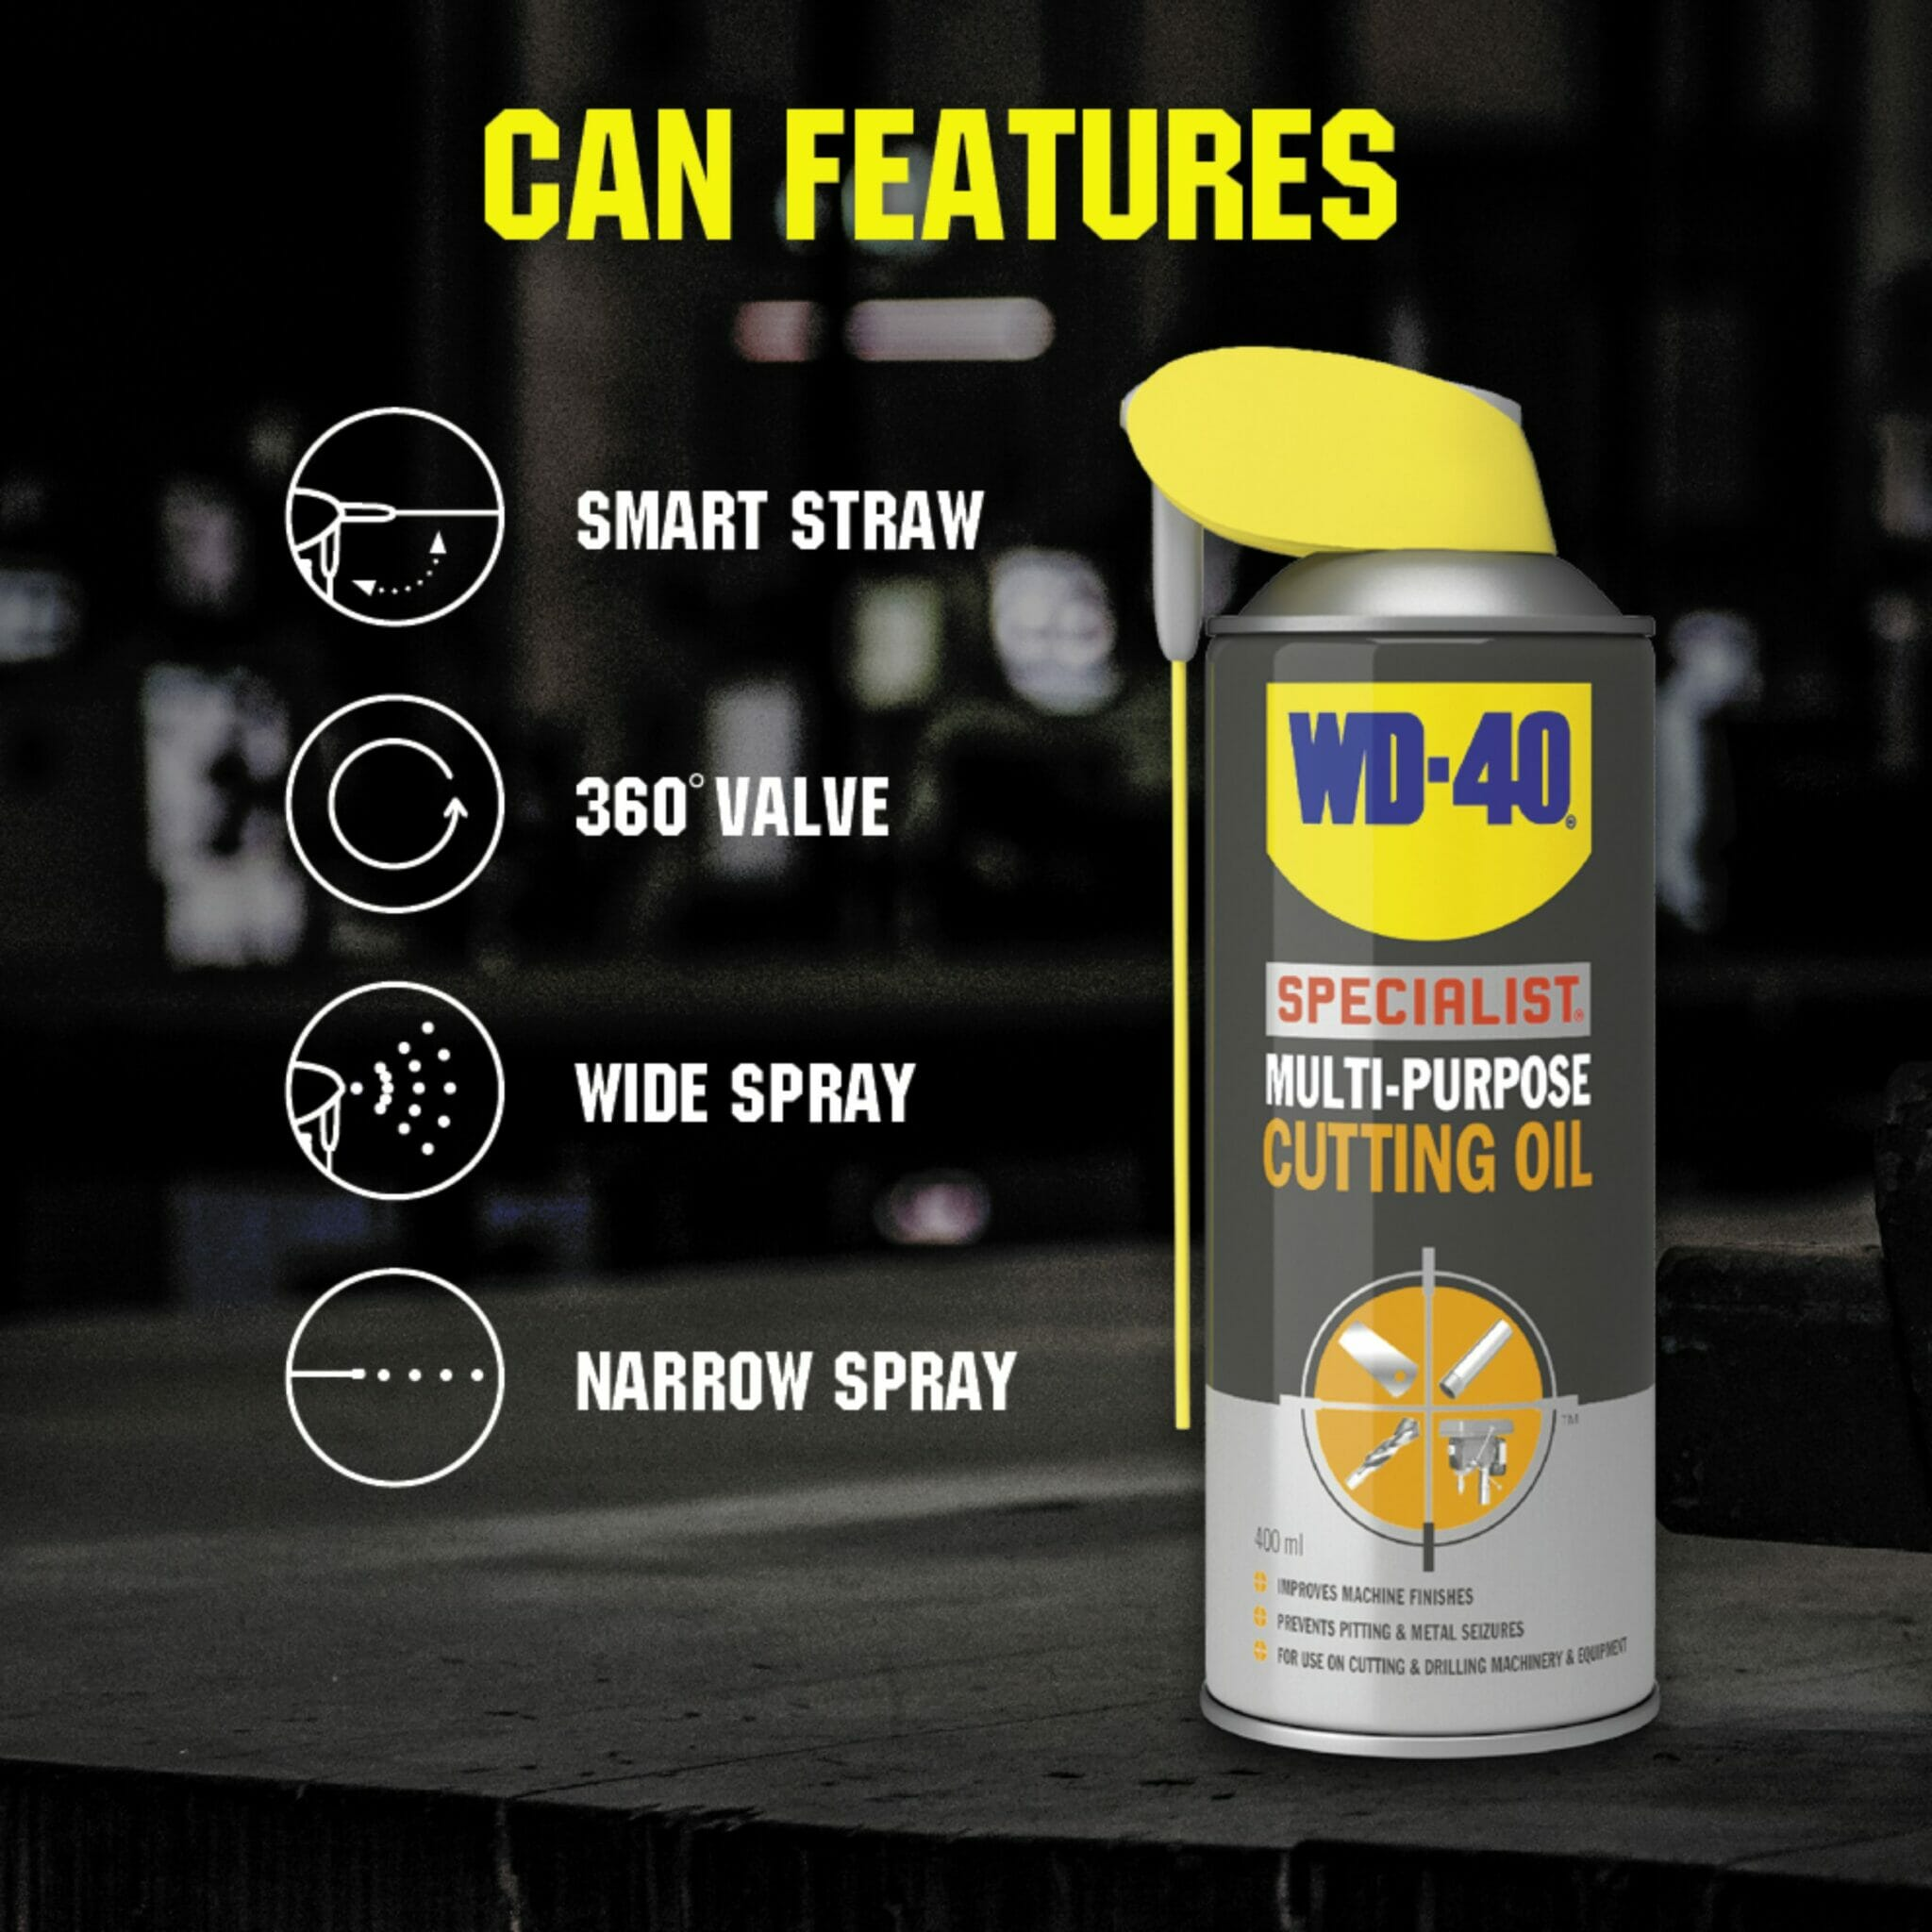 uk wd40 specialist multi purpose cutting oil 400ml can features lifestyle background